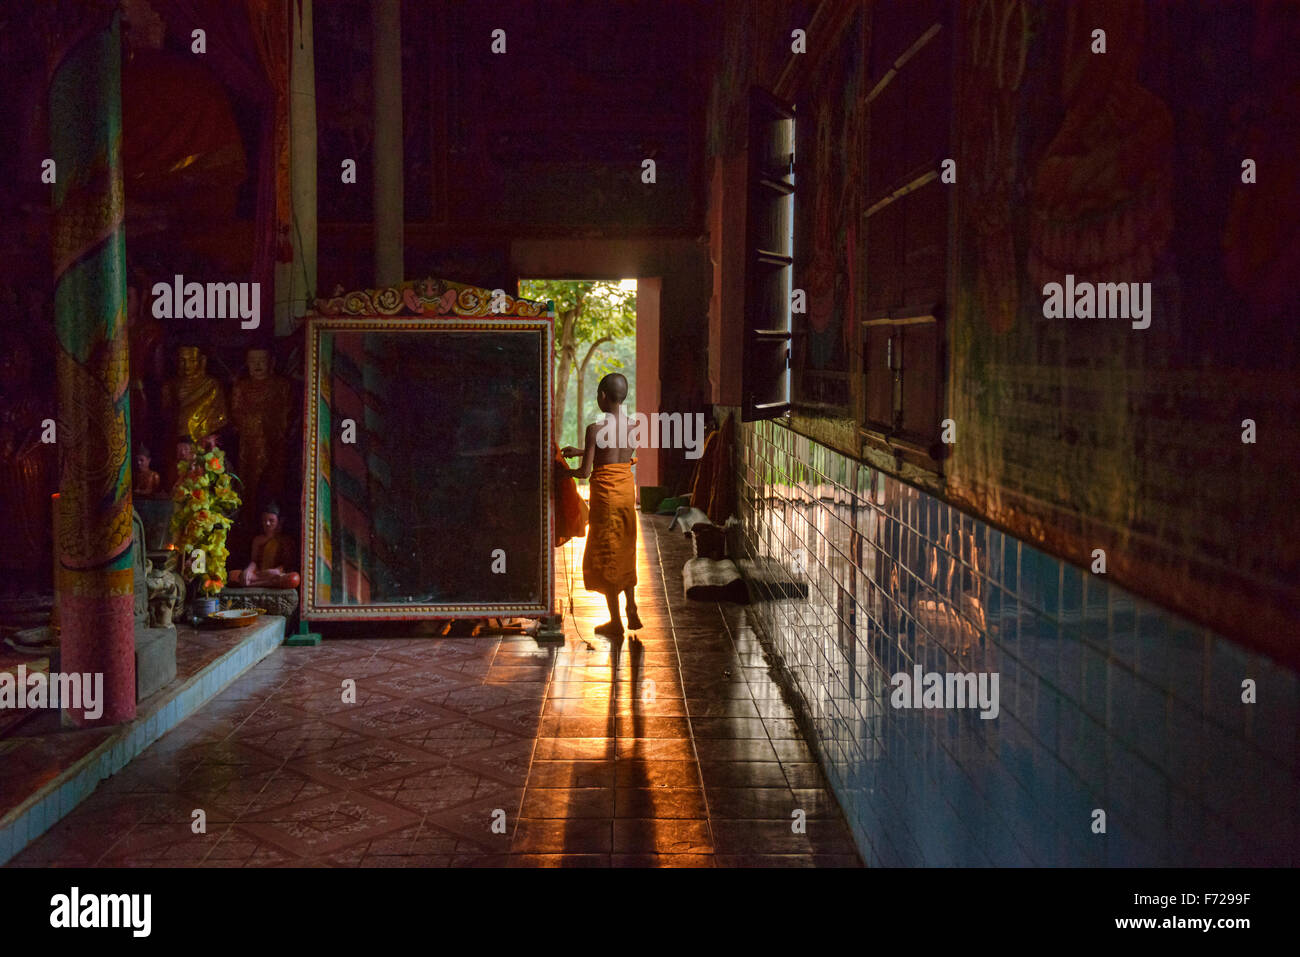 A young monk in late afternoon light at Kampong Phluk, Siem Reap, Cambodia - Stock Image